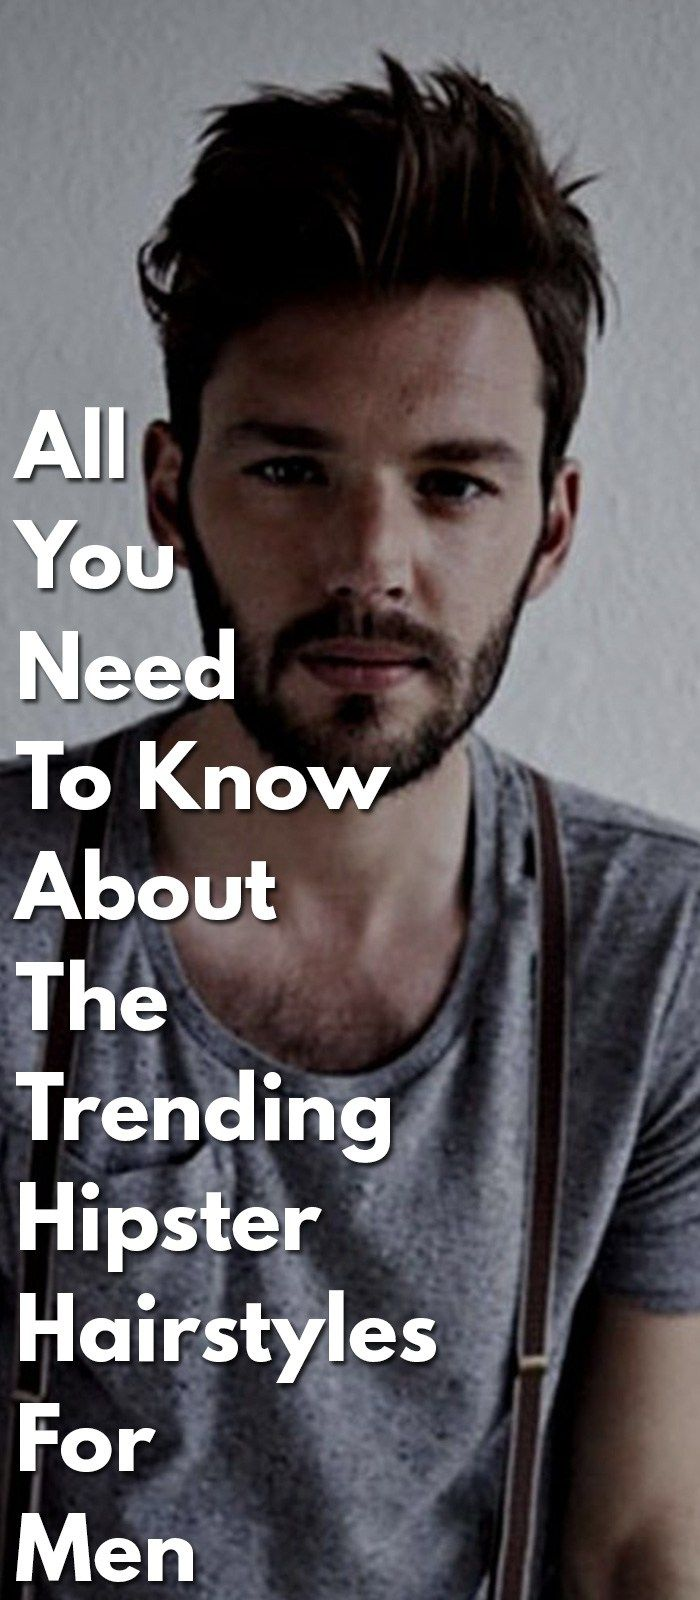 Hipster men haircut all you need to know about the trending hipster hairstyles for men